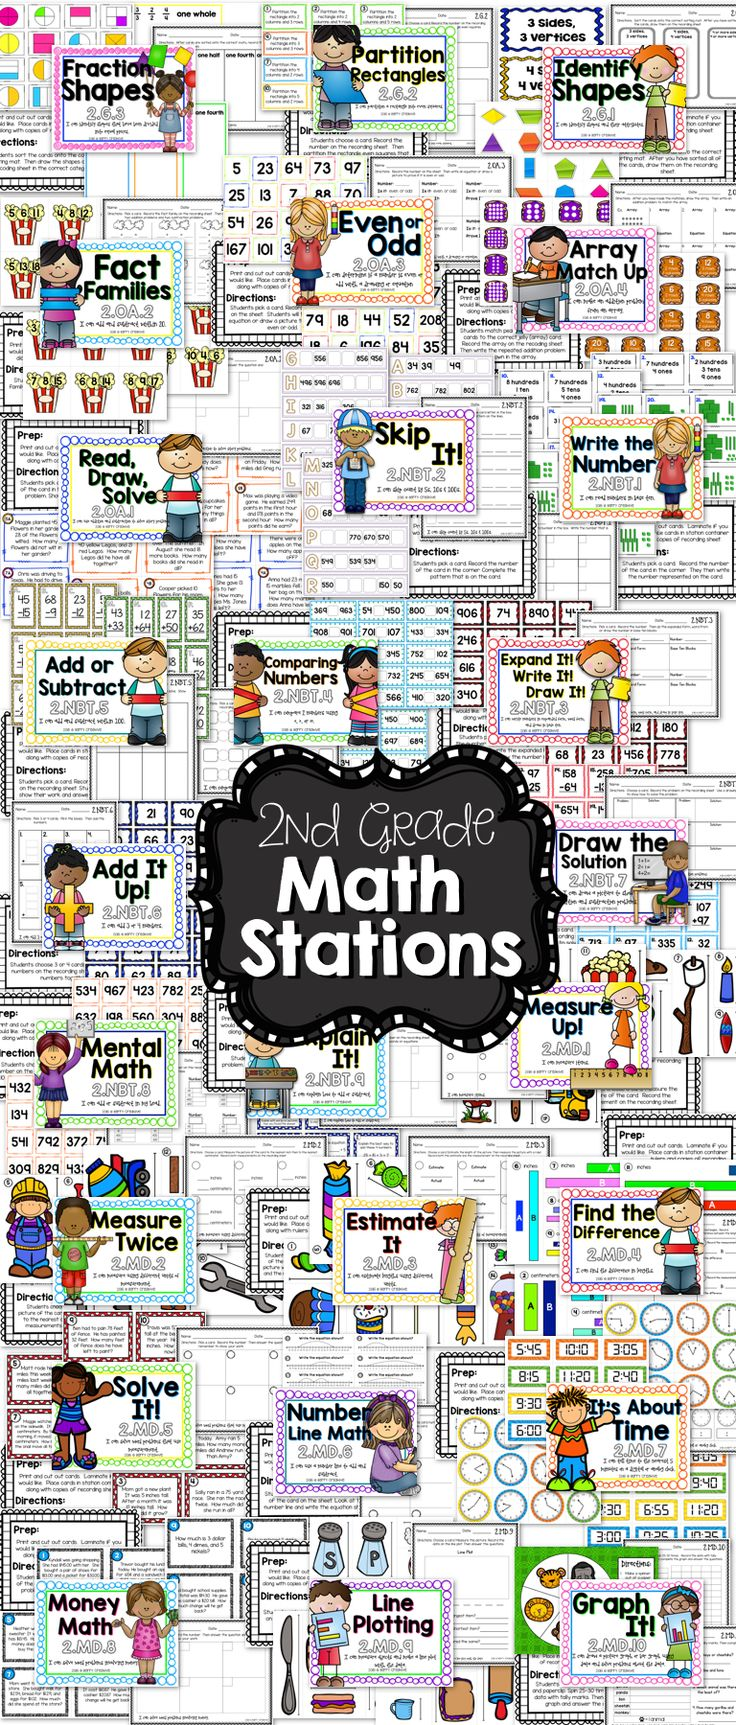 Math Stations for EVERY 2nd Grade CC Math Standard...Less than $1 for each station!